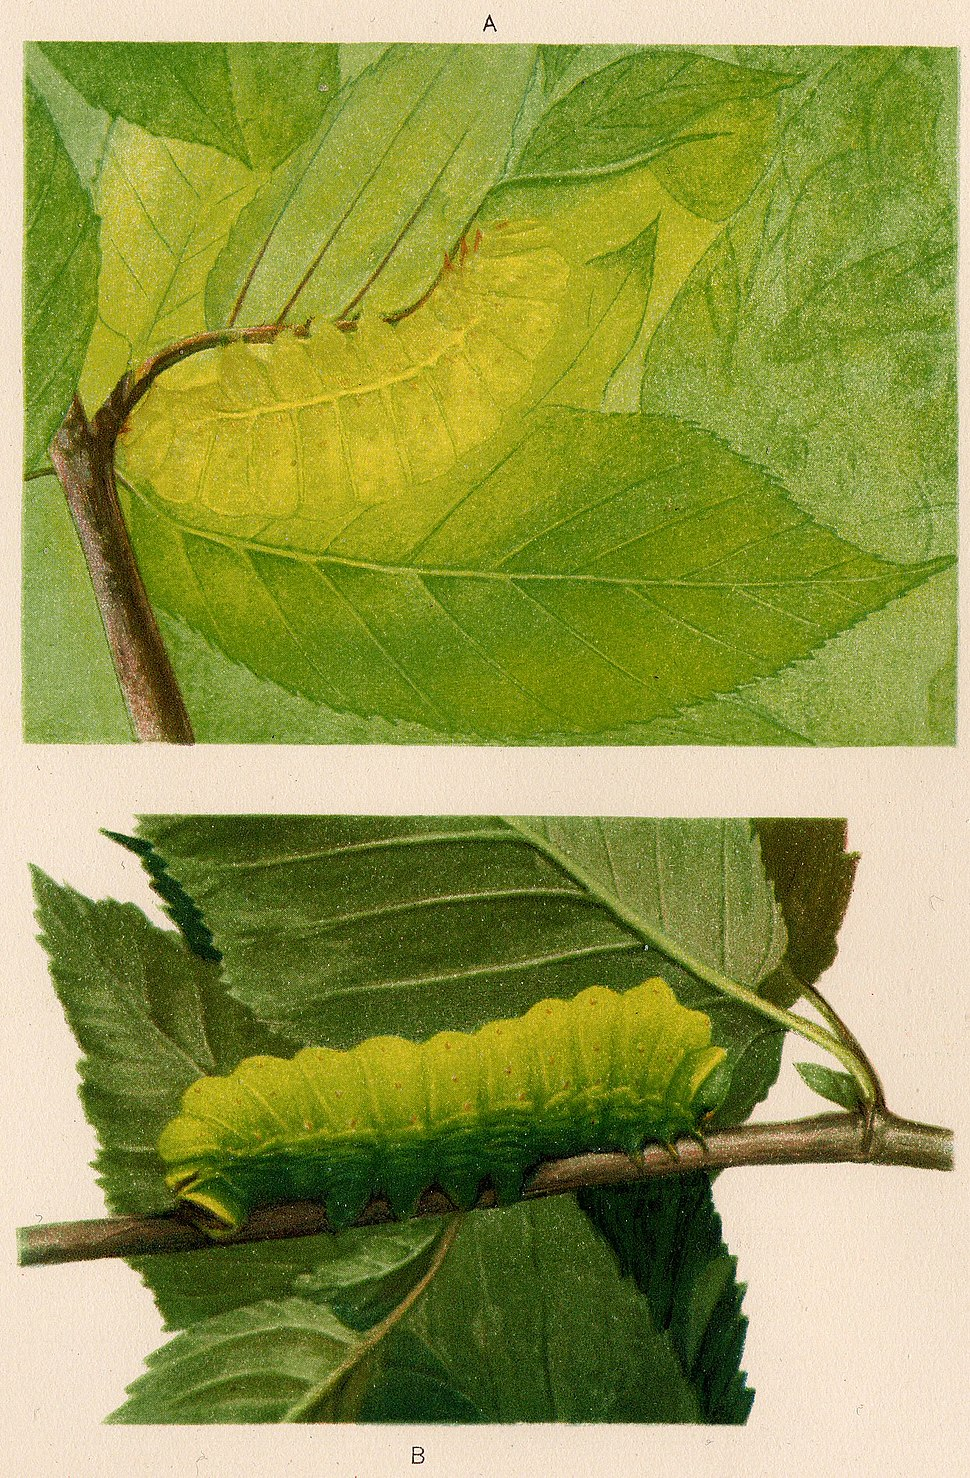 Thayer Concealing-Coloration Plate XII - Luna Caterpillar a) in position b) inverted